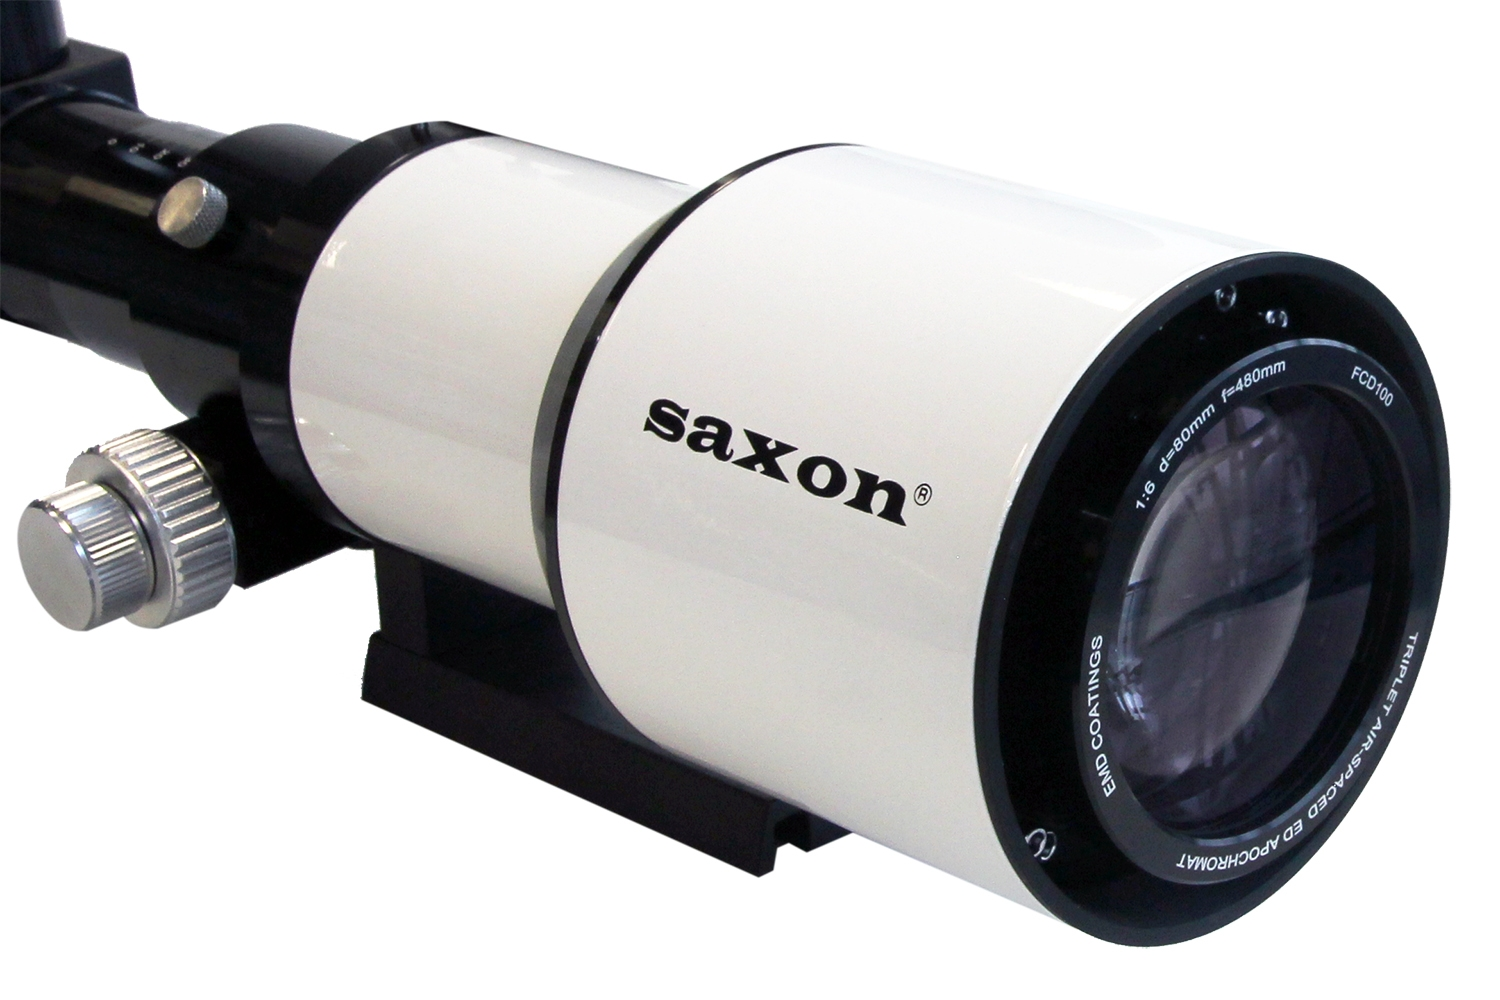 Saxon saxon 80mm apochromatic fcd100 air spaced ed triplet